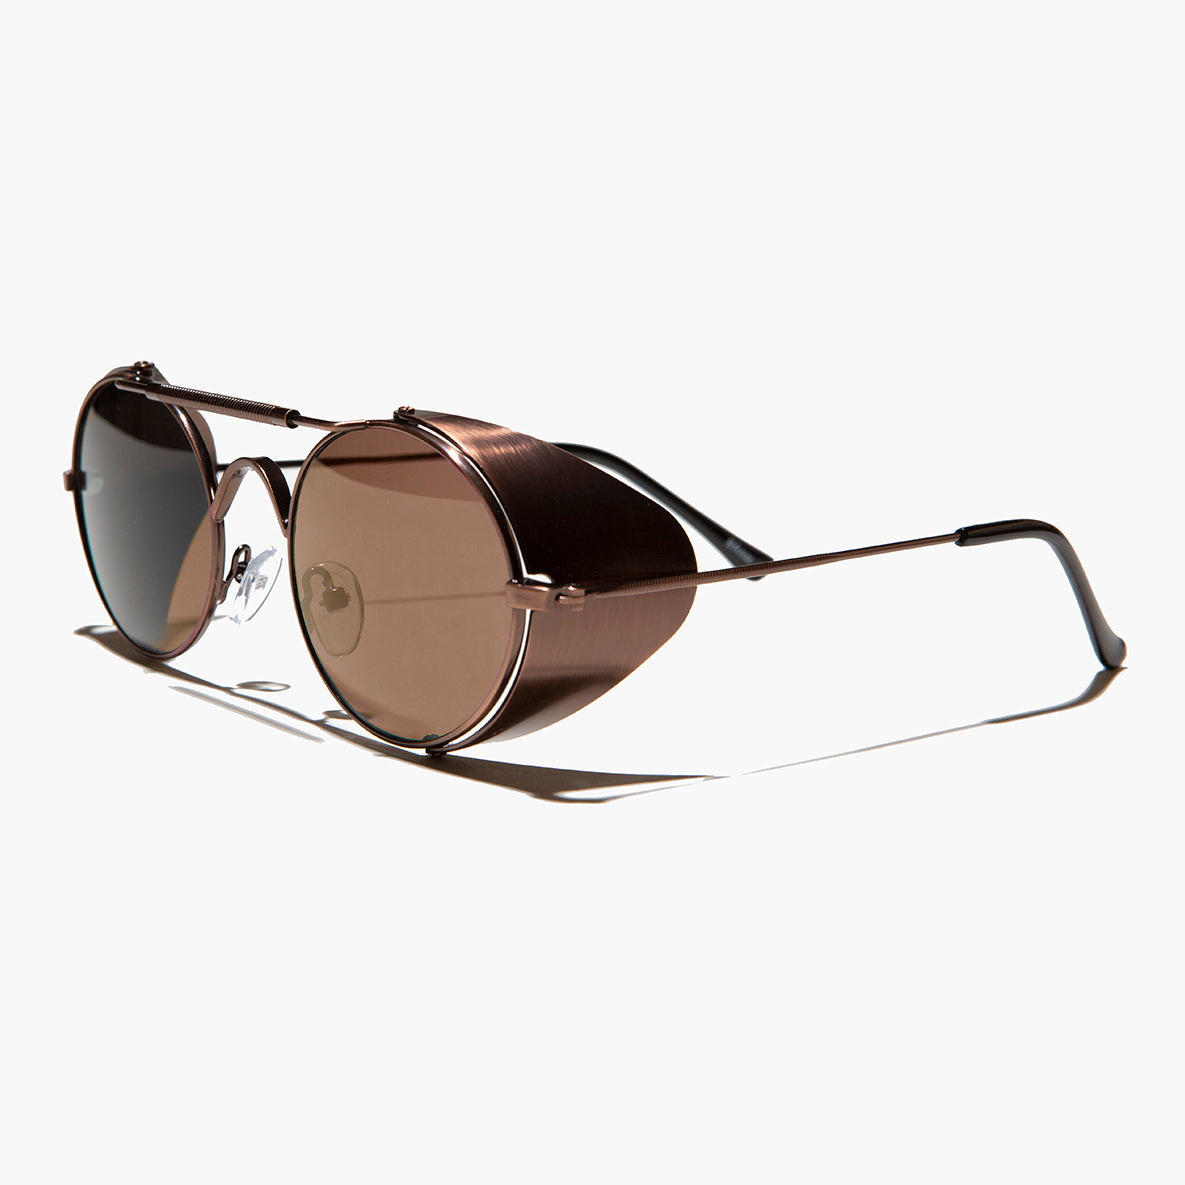 Steampunk Sunglass with Folding Side Shields